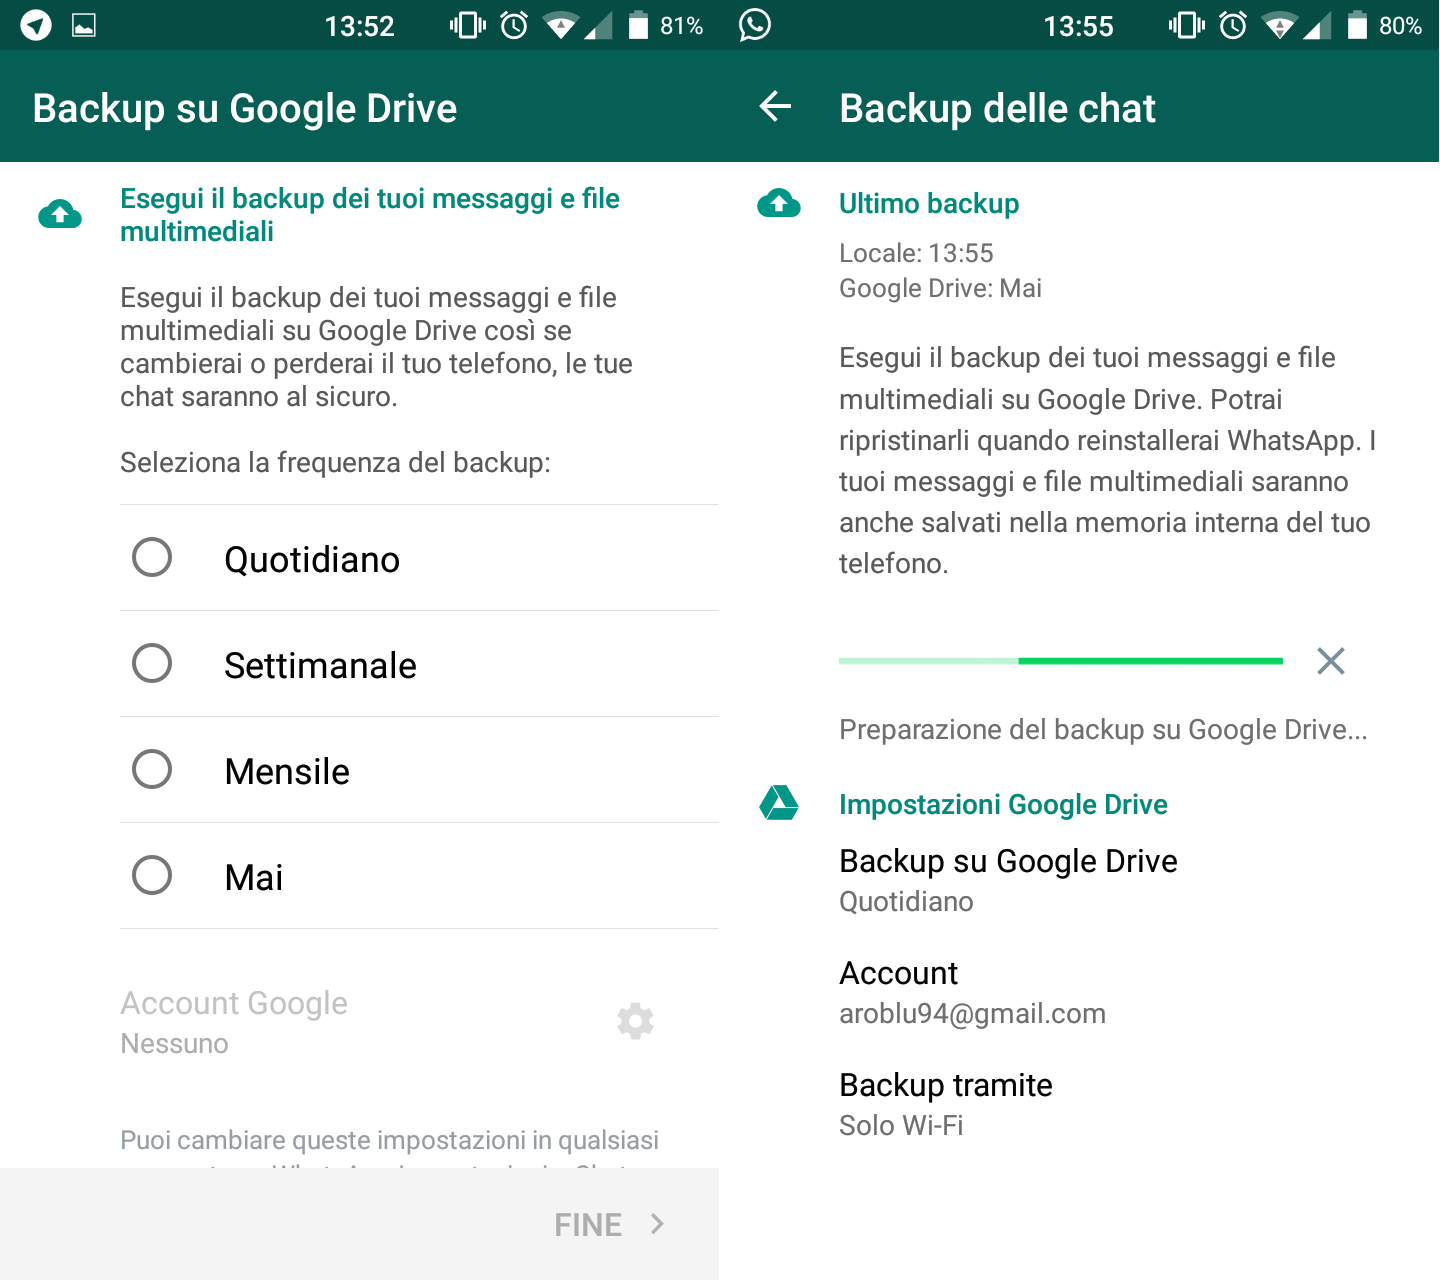 WhatsApp: backup su Google Drive nuovamente disponibile